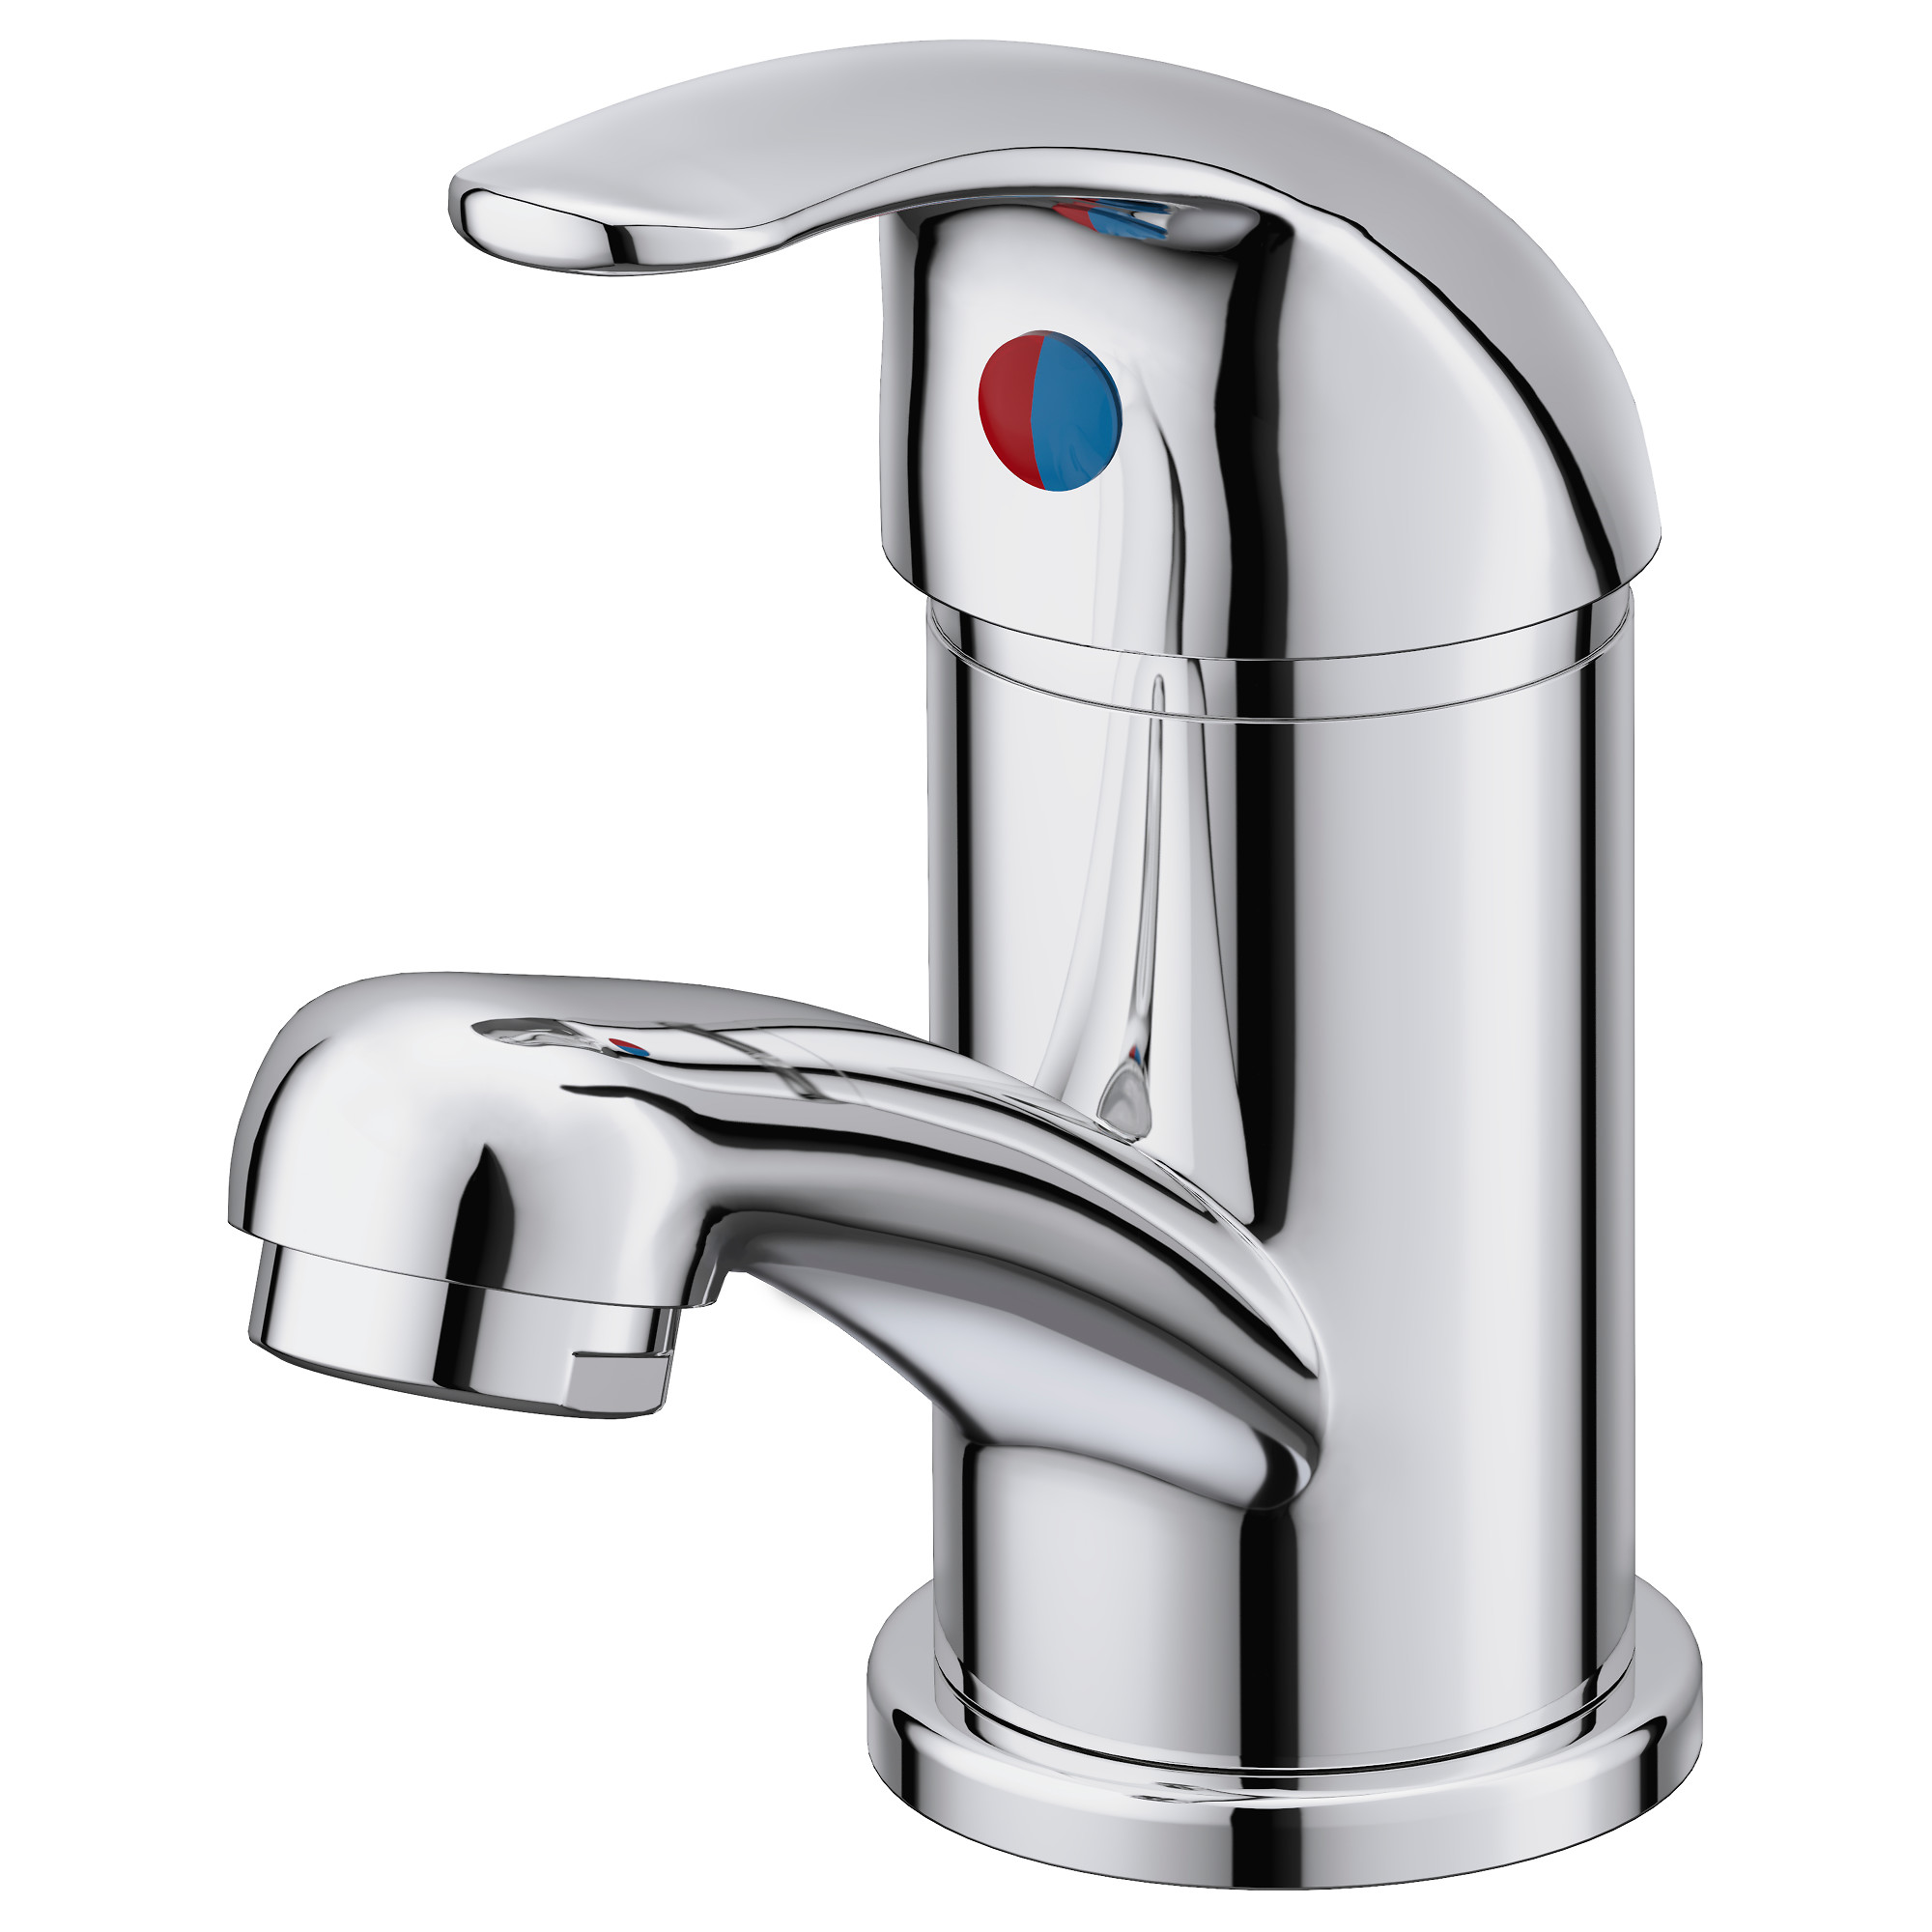 OlskÄr Wash Basin Mixer Tap Chrome